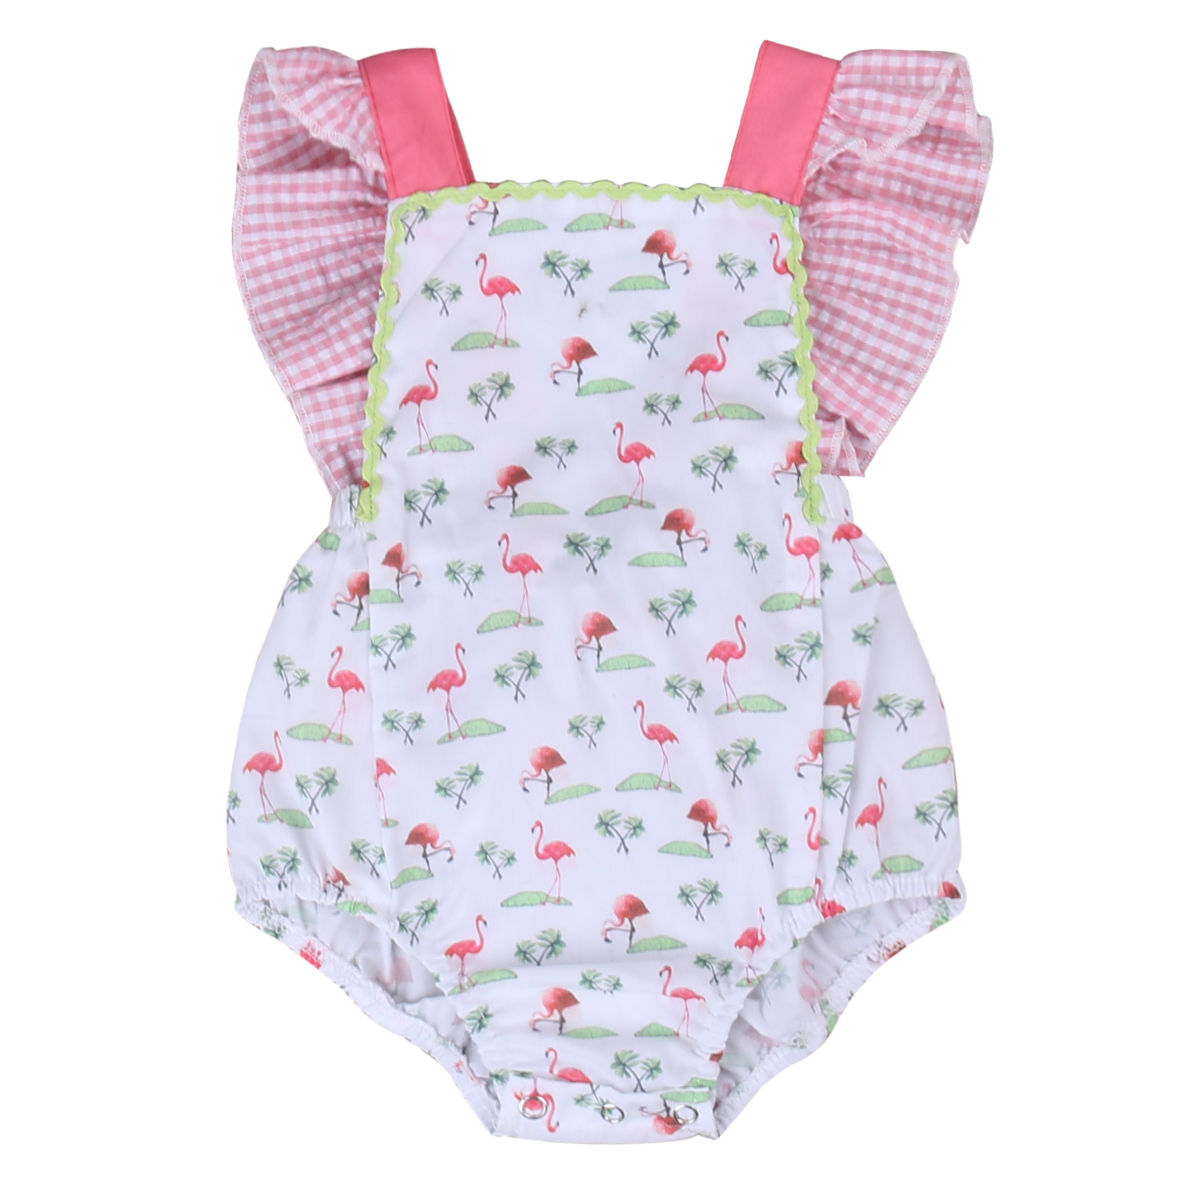 2017 Lovely Newborn Baby Girl Clothes Summer Sleeveless Ruffles Halter Romper Toddler Kids ...